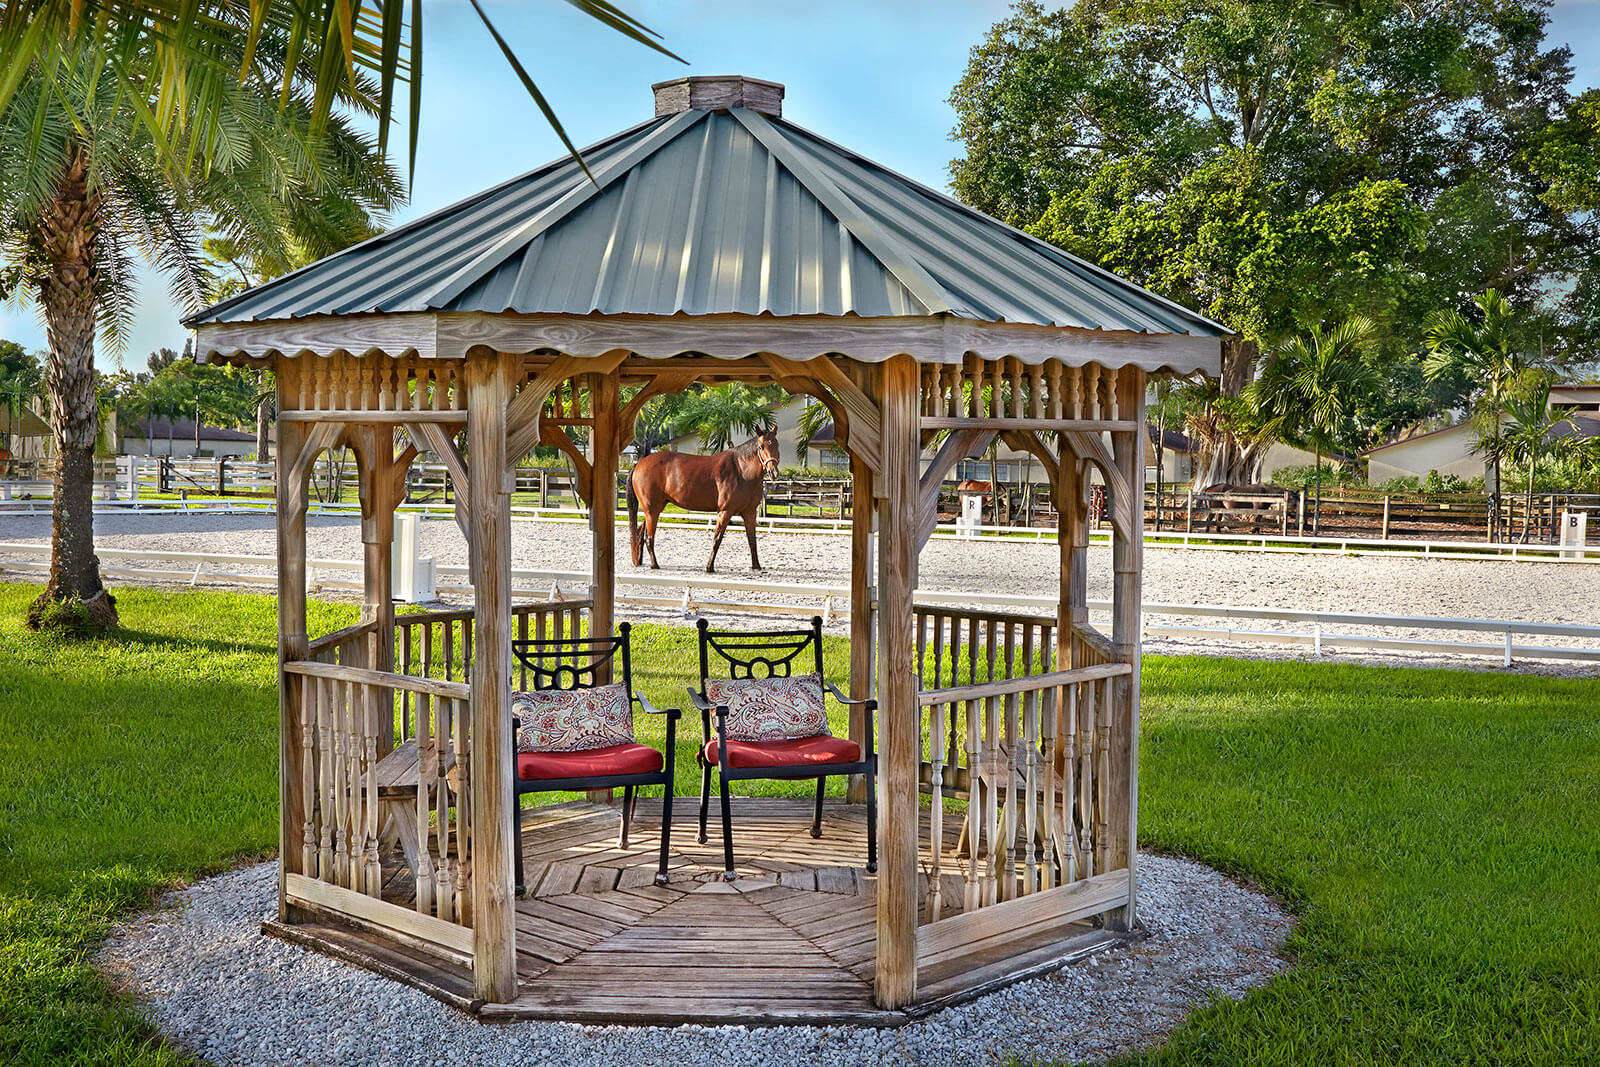 RECO Ranch Horse Stables in Delray Beach, FL